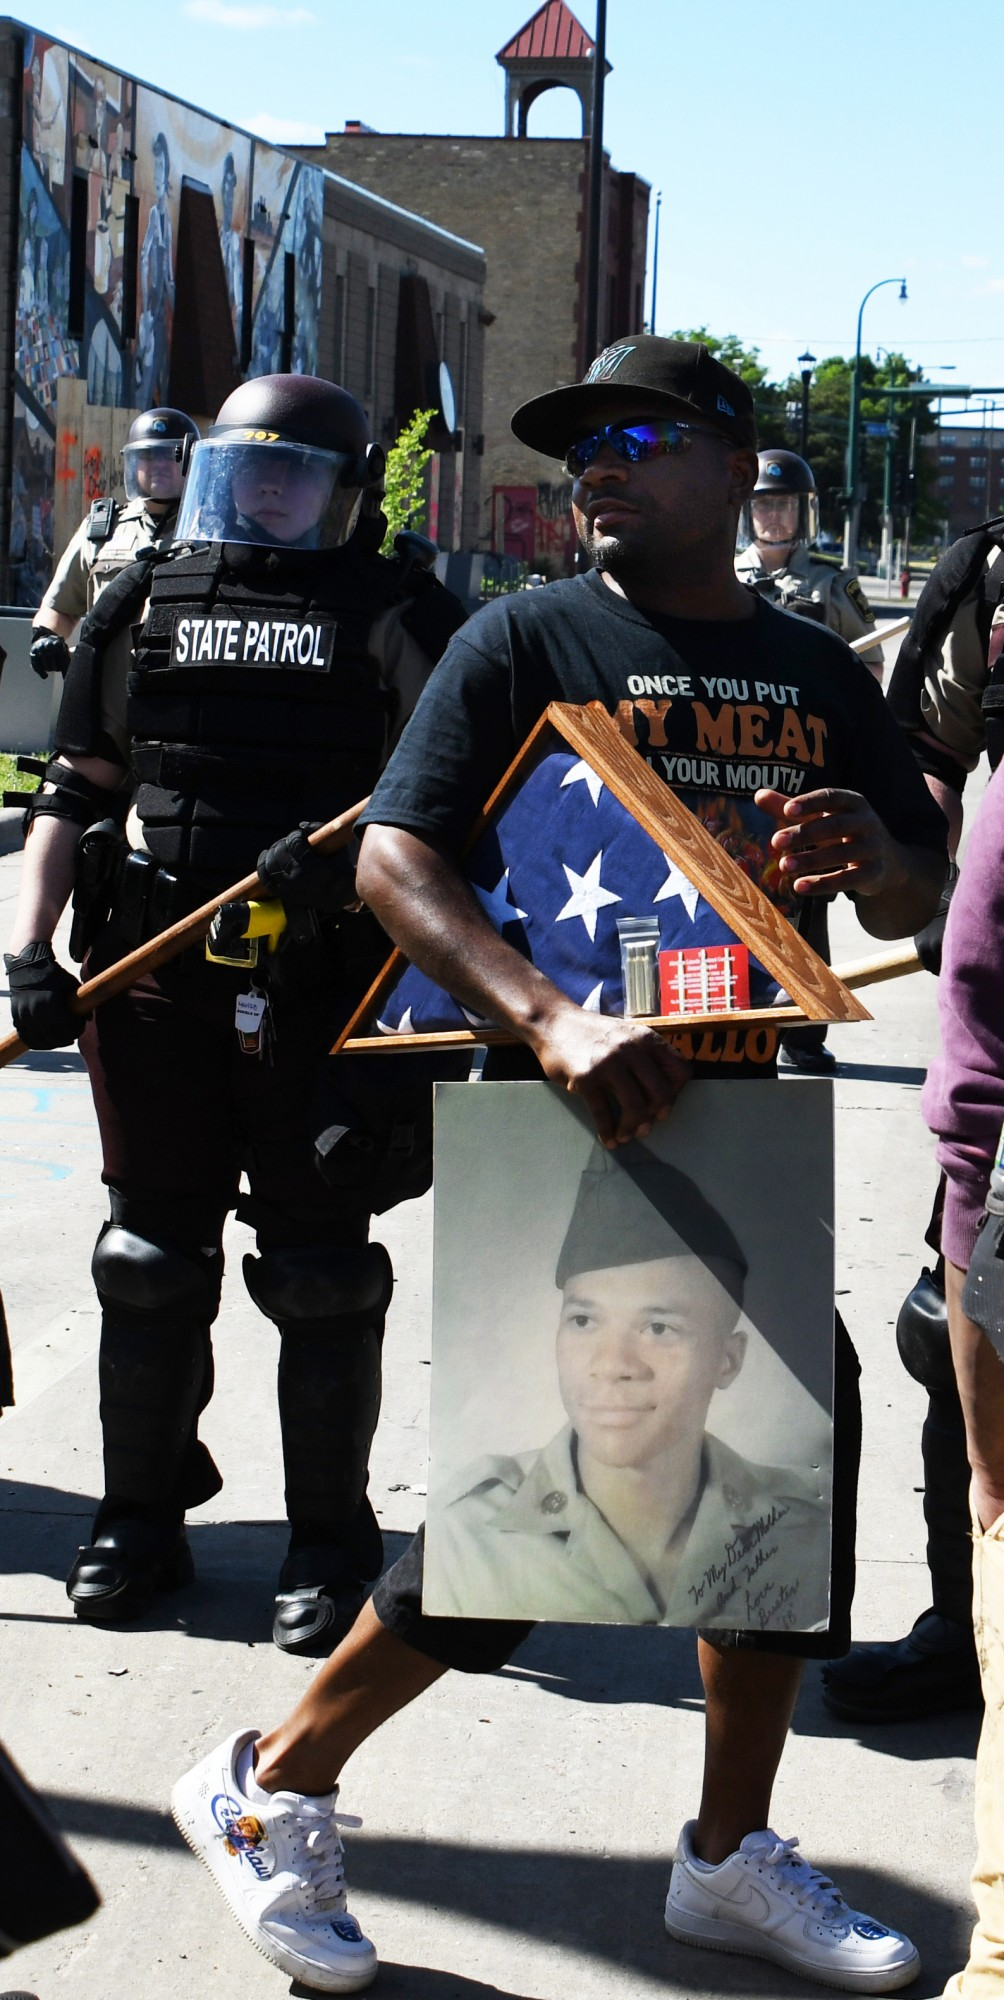 """Bernard Duckworth Jr. carries his father and U.S. Armed Forces Veteran Bernard Duckworth's flag and portrait while addressing the assembled demonstrators and law enforcement near the Minneapolis 3rd Police Precinct on Friday, May 29. """"We have soldiers on the front lines for real … including in hospitals … and they are dying for America,"""" Duckworth said. """"All these people out there [at the protest] are Americans, and on the other side are more Americans."""""""